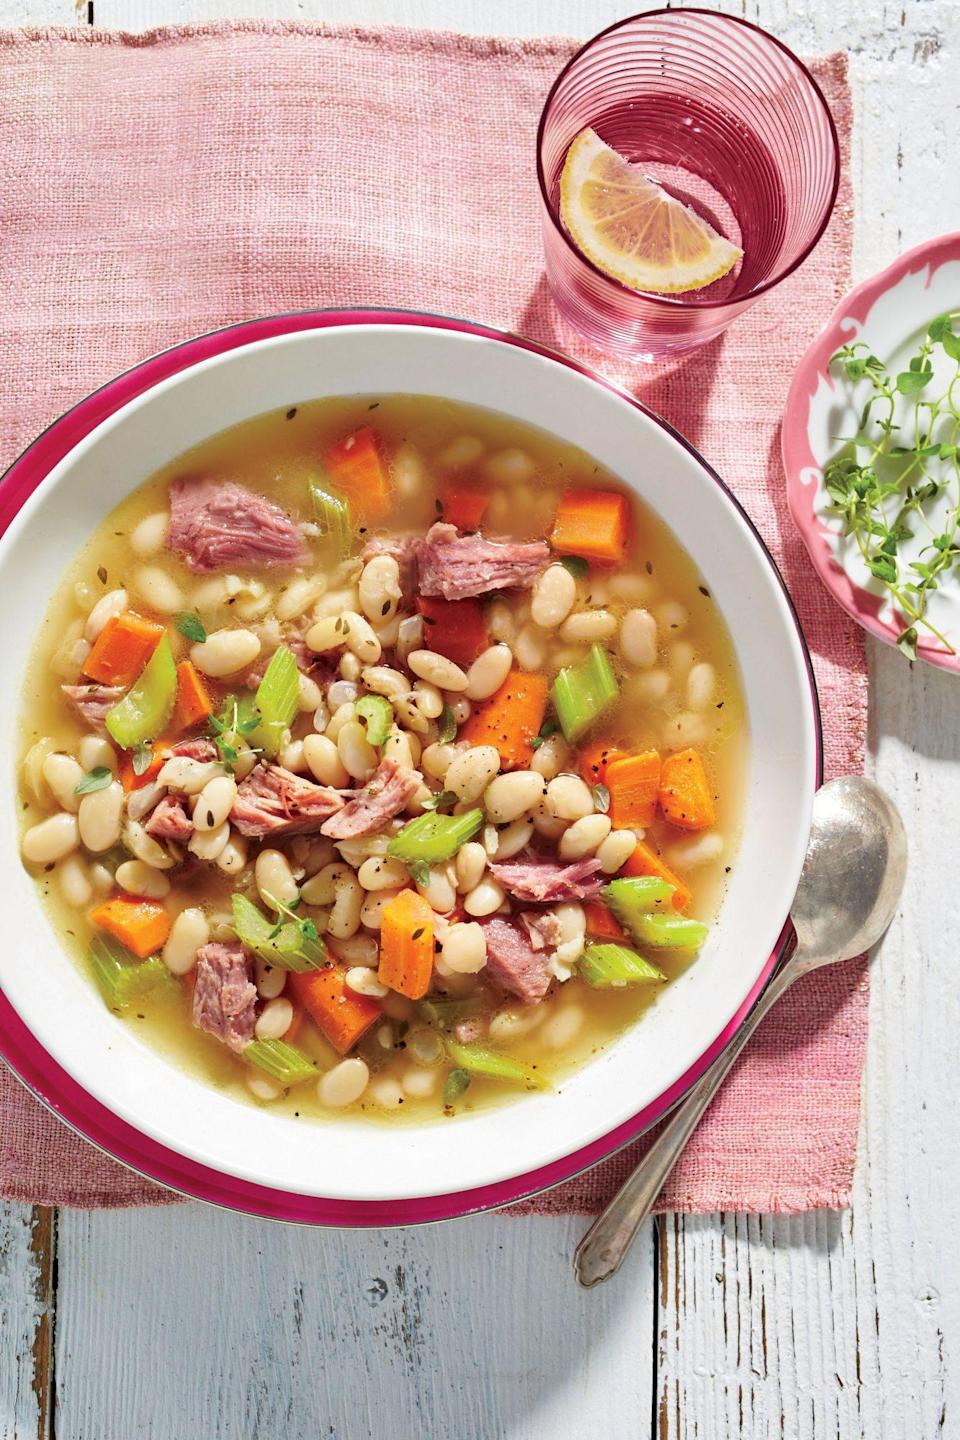 """<p><strong>Recipe: <a href=""""https://www.southernliving.com/recipes/ham-and-bean-soup-recipe"""" rel=""""nofollow noopener"""" target=""""_blank"""" data-ylk=""""slk:Ham-and-Bean Soup"""" class=""""link rapid-noclick-resp"""">Ham-and-Bean Soup</a></strong></p> <p>For any occasion that ham is on the menu, make sure you save the meaty bone so you can enjoy this bean soup a few days later. In addition to the bone, you'll just add dried white beans, chopped carrots, celery, onions, garlic, chicken stock, and fresh thyme to your slow cooker and let it simmer for 5 to 6 hours. </p>"""